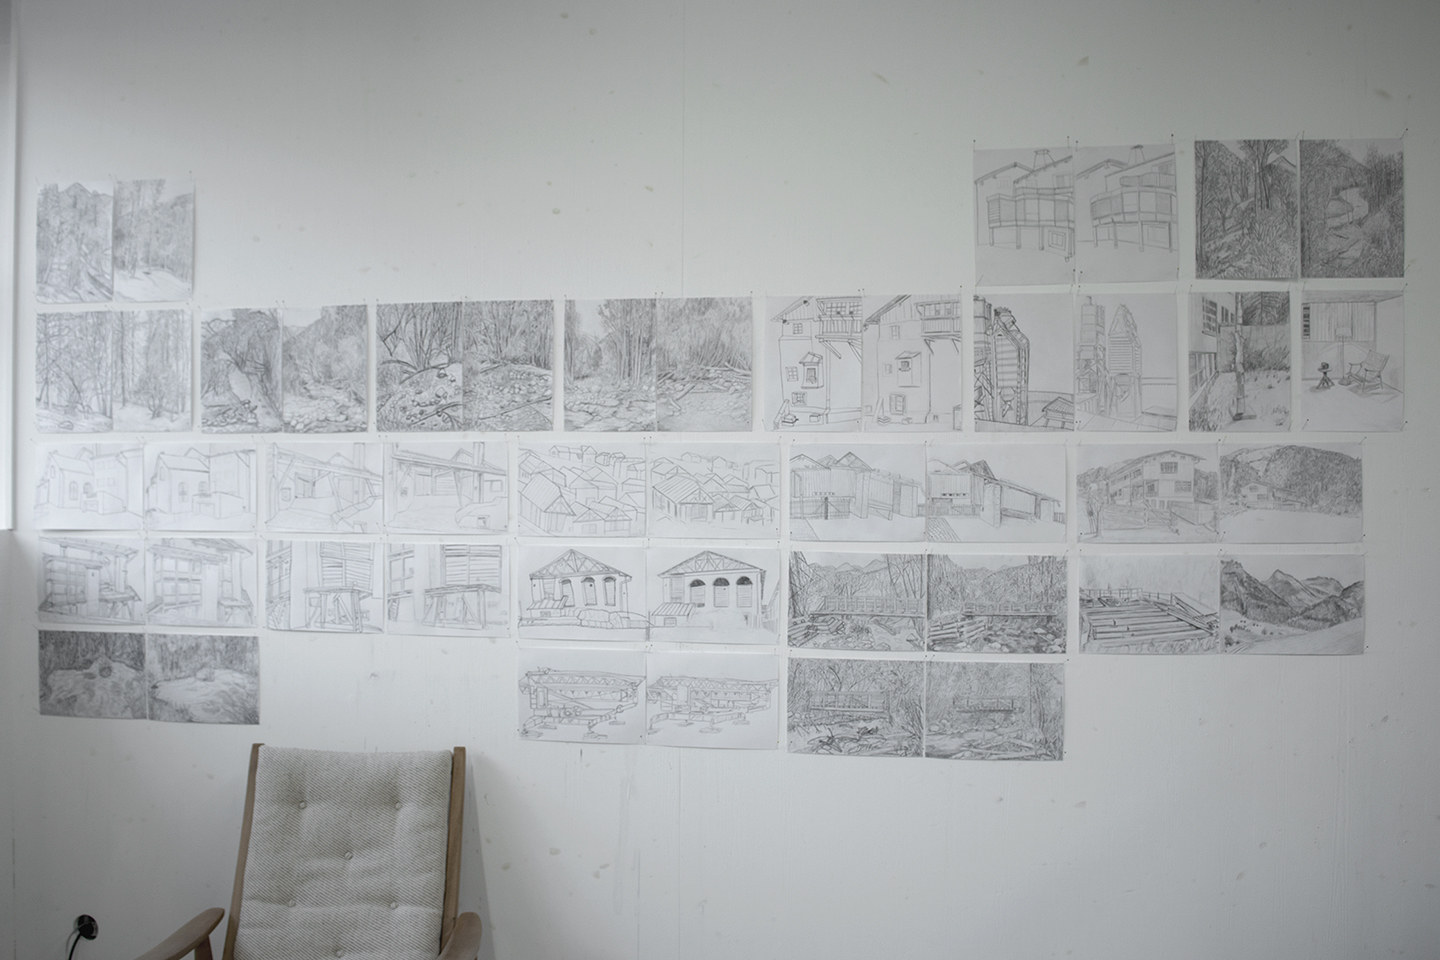 Studio-view with Drawings